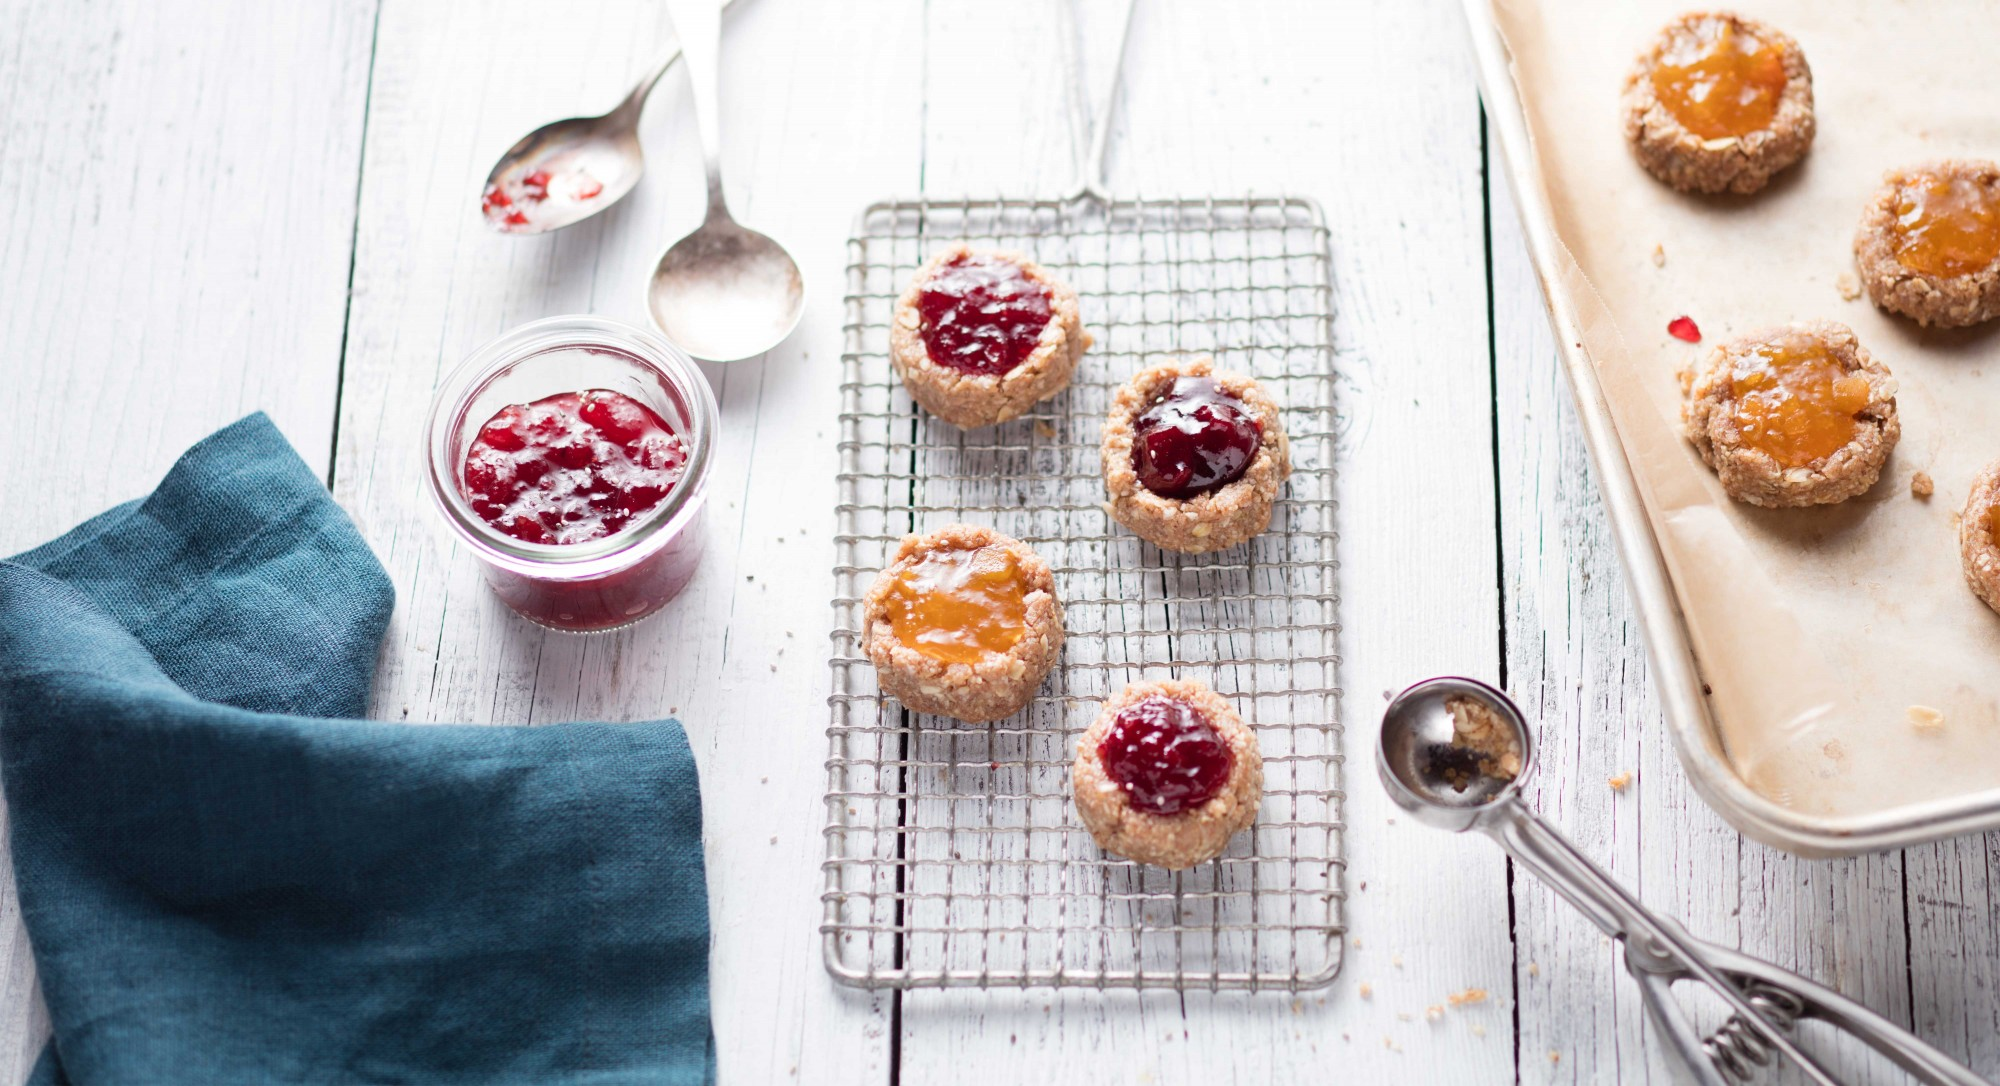 A Classic Reinvented: Raw and Sugar-Free Thumbprint Cookies